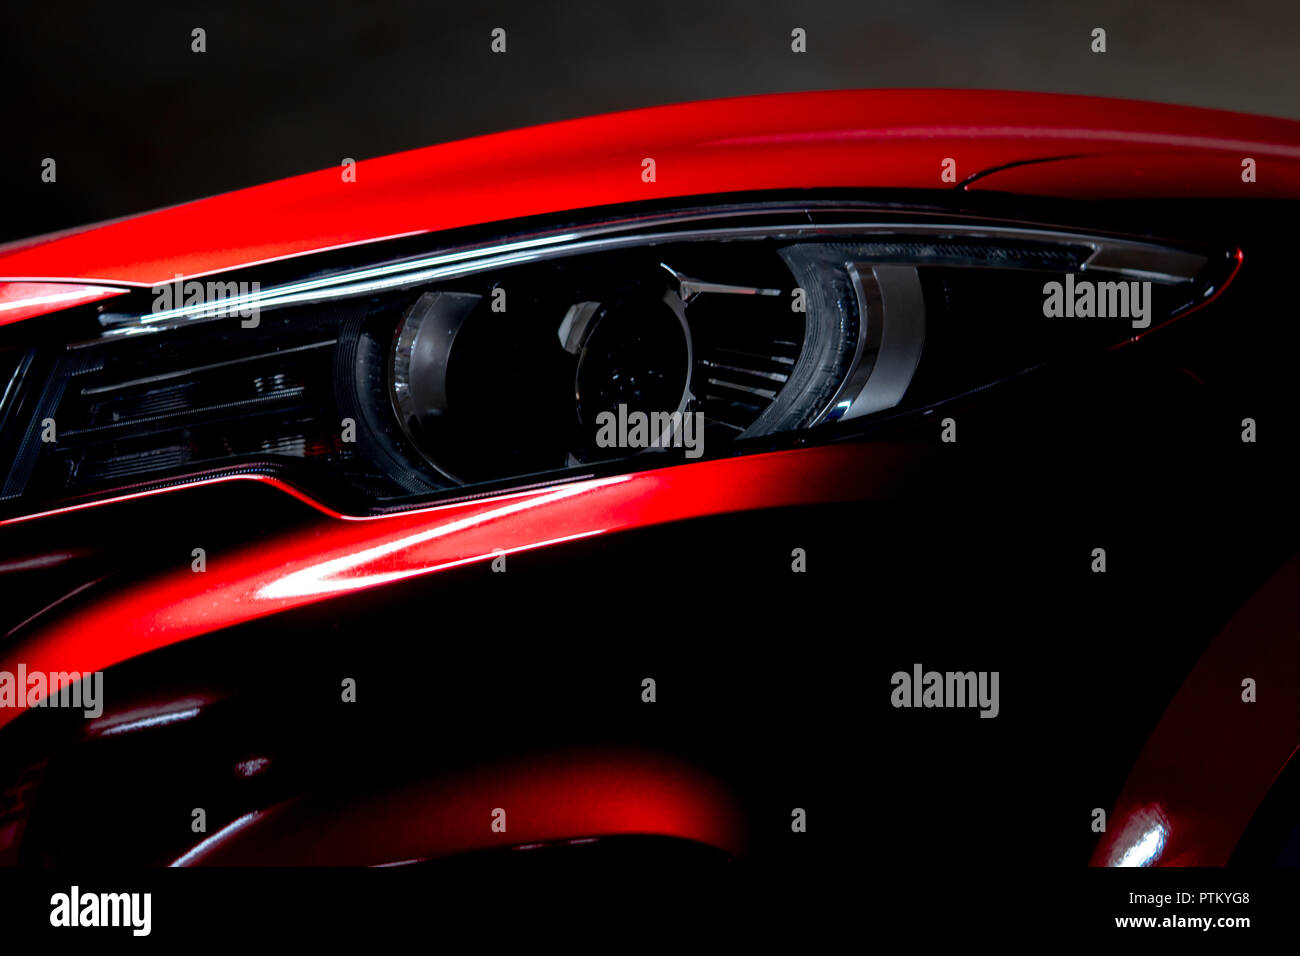 Closeup headlight of shiny red luxury SUV compact car. Elegant electric car technology and business concept. Hybrid auto and automotive concept. Car p - Stock Image